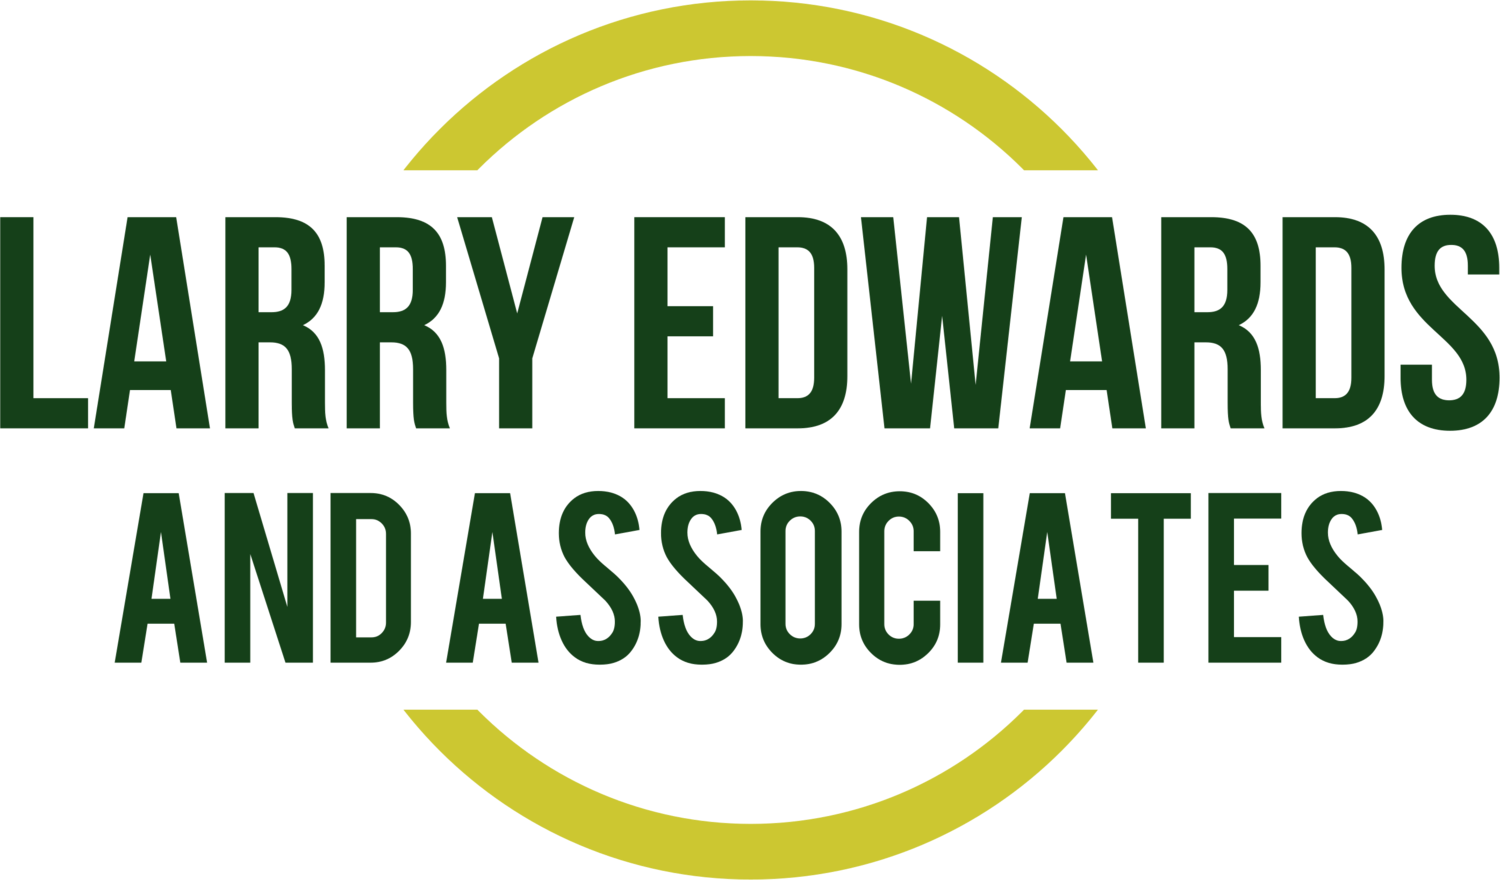 LARRY EDWARDS AND ASSOCIATES